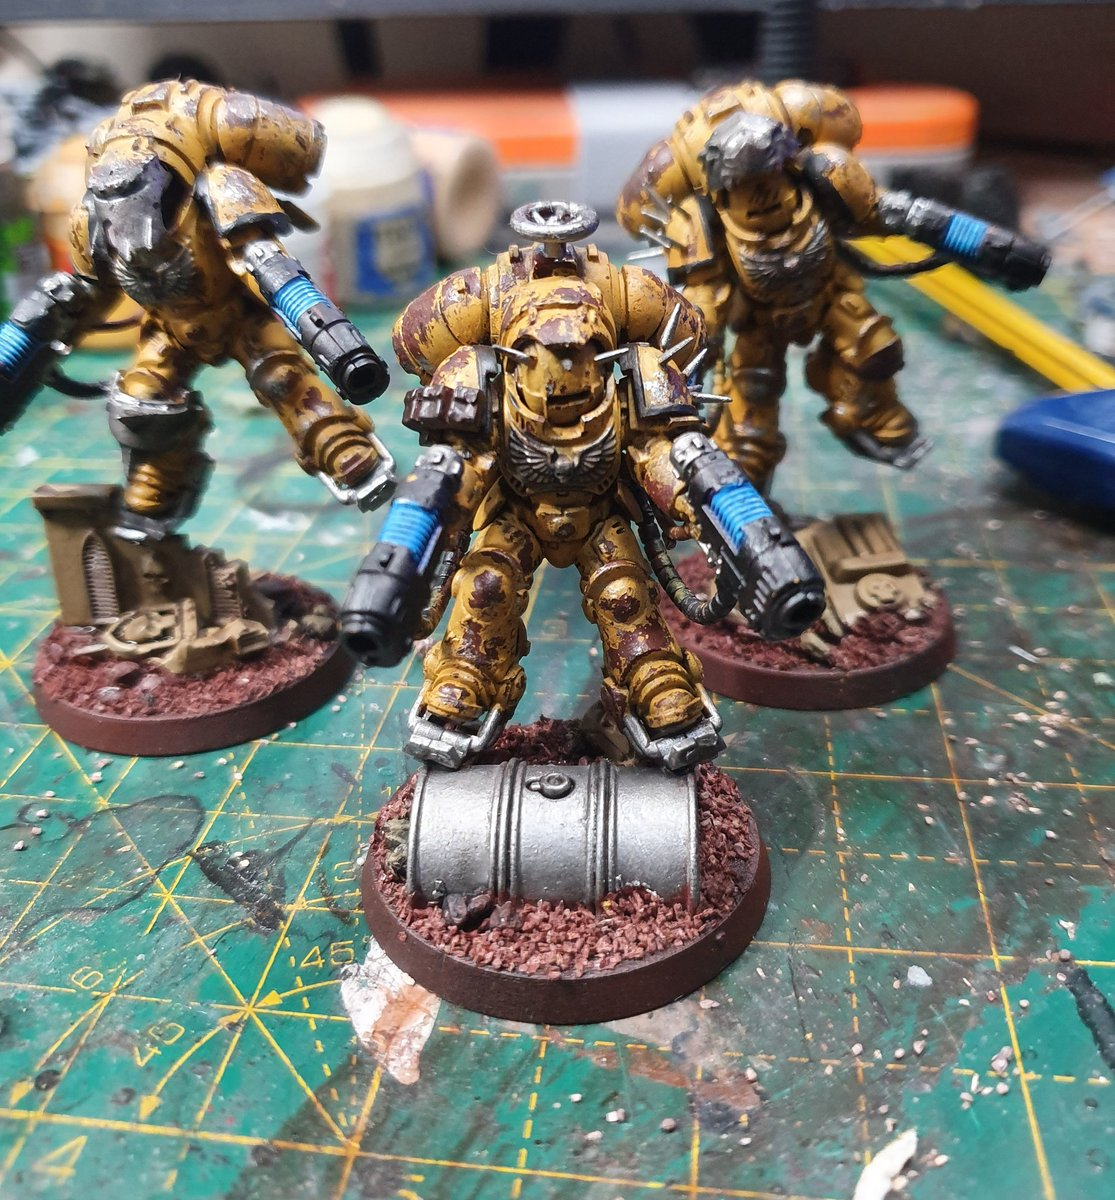 Almost finished these guys and then onto painting the tank!! #paintingwarhammer #gamesworkshop #warmongers #miniaturewargaming #painting #miniaturepainting #warhammer40k #spacemarines #primaris #primarisspacemarines #bitzbox #postapocalyptic #postapoc #kitbash #wh40k